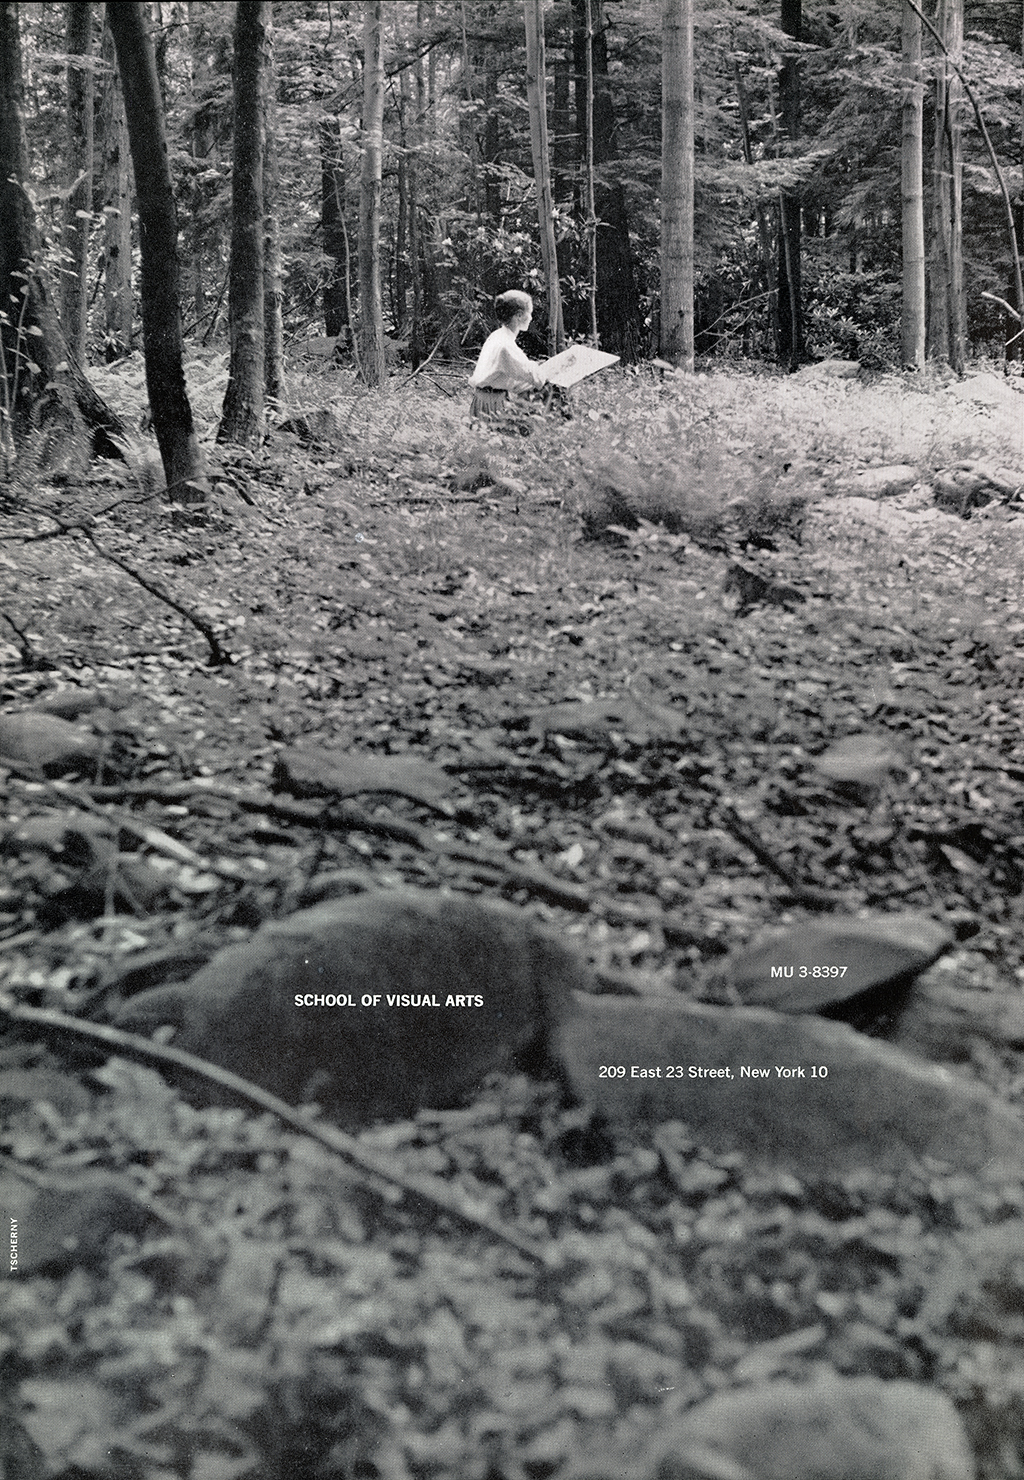 A black and white photograph of a distant woman drawing in a forest.